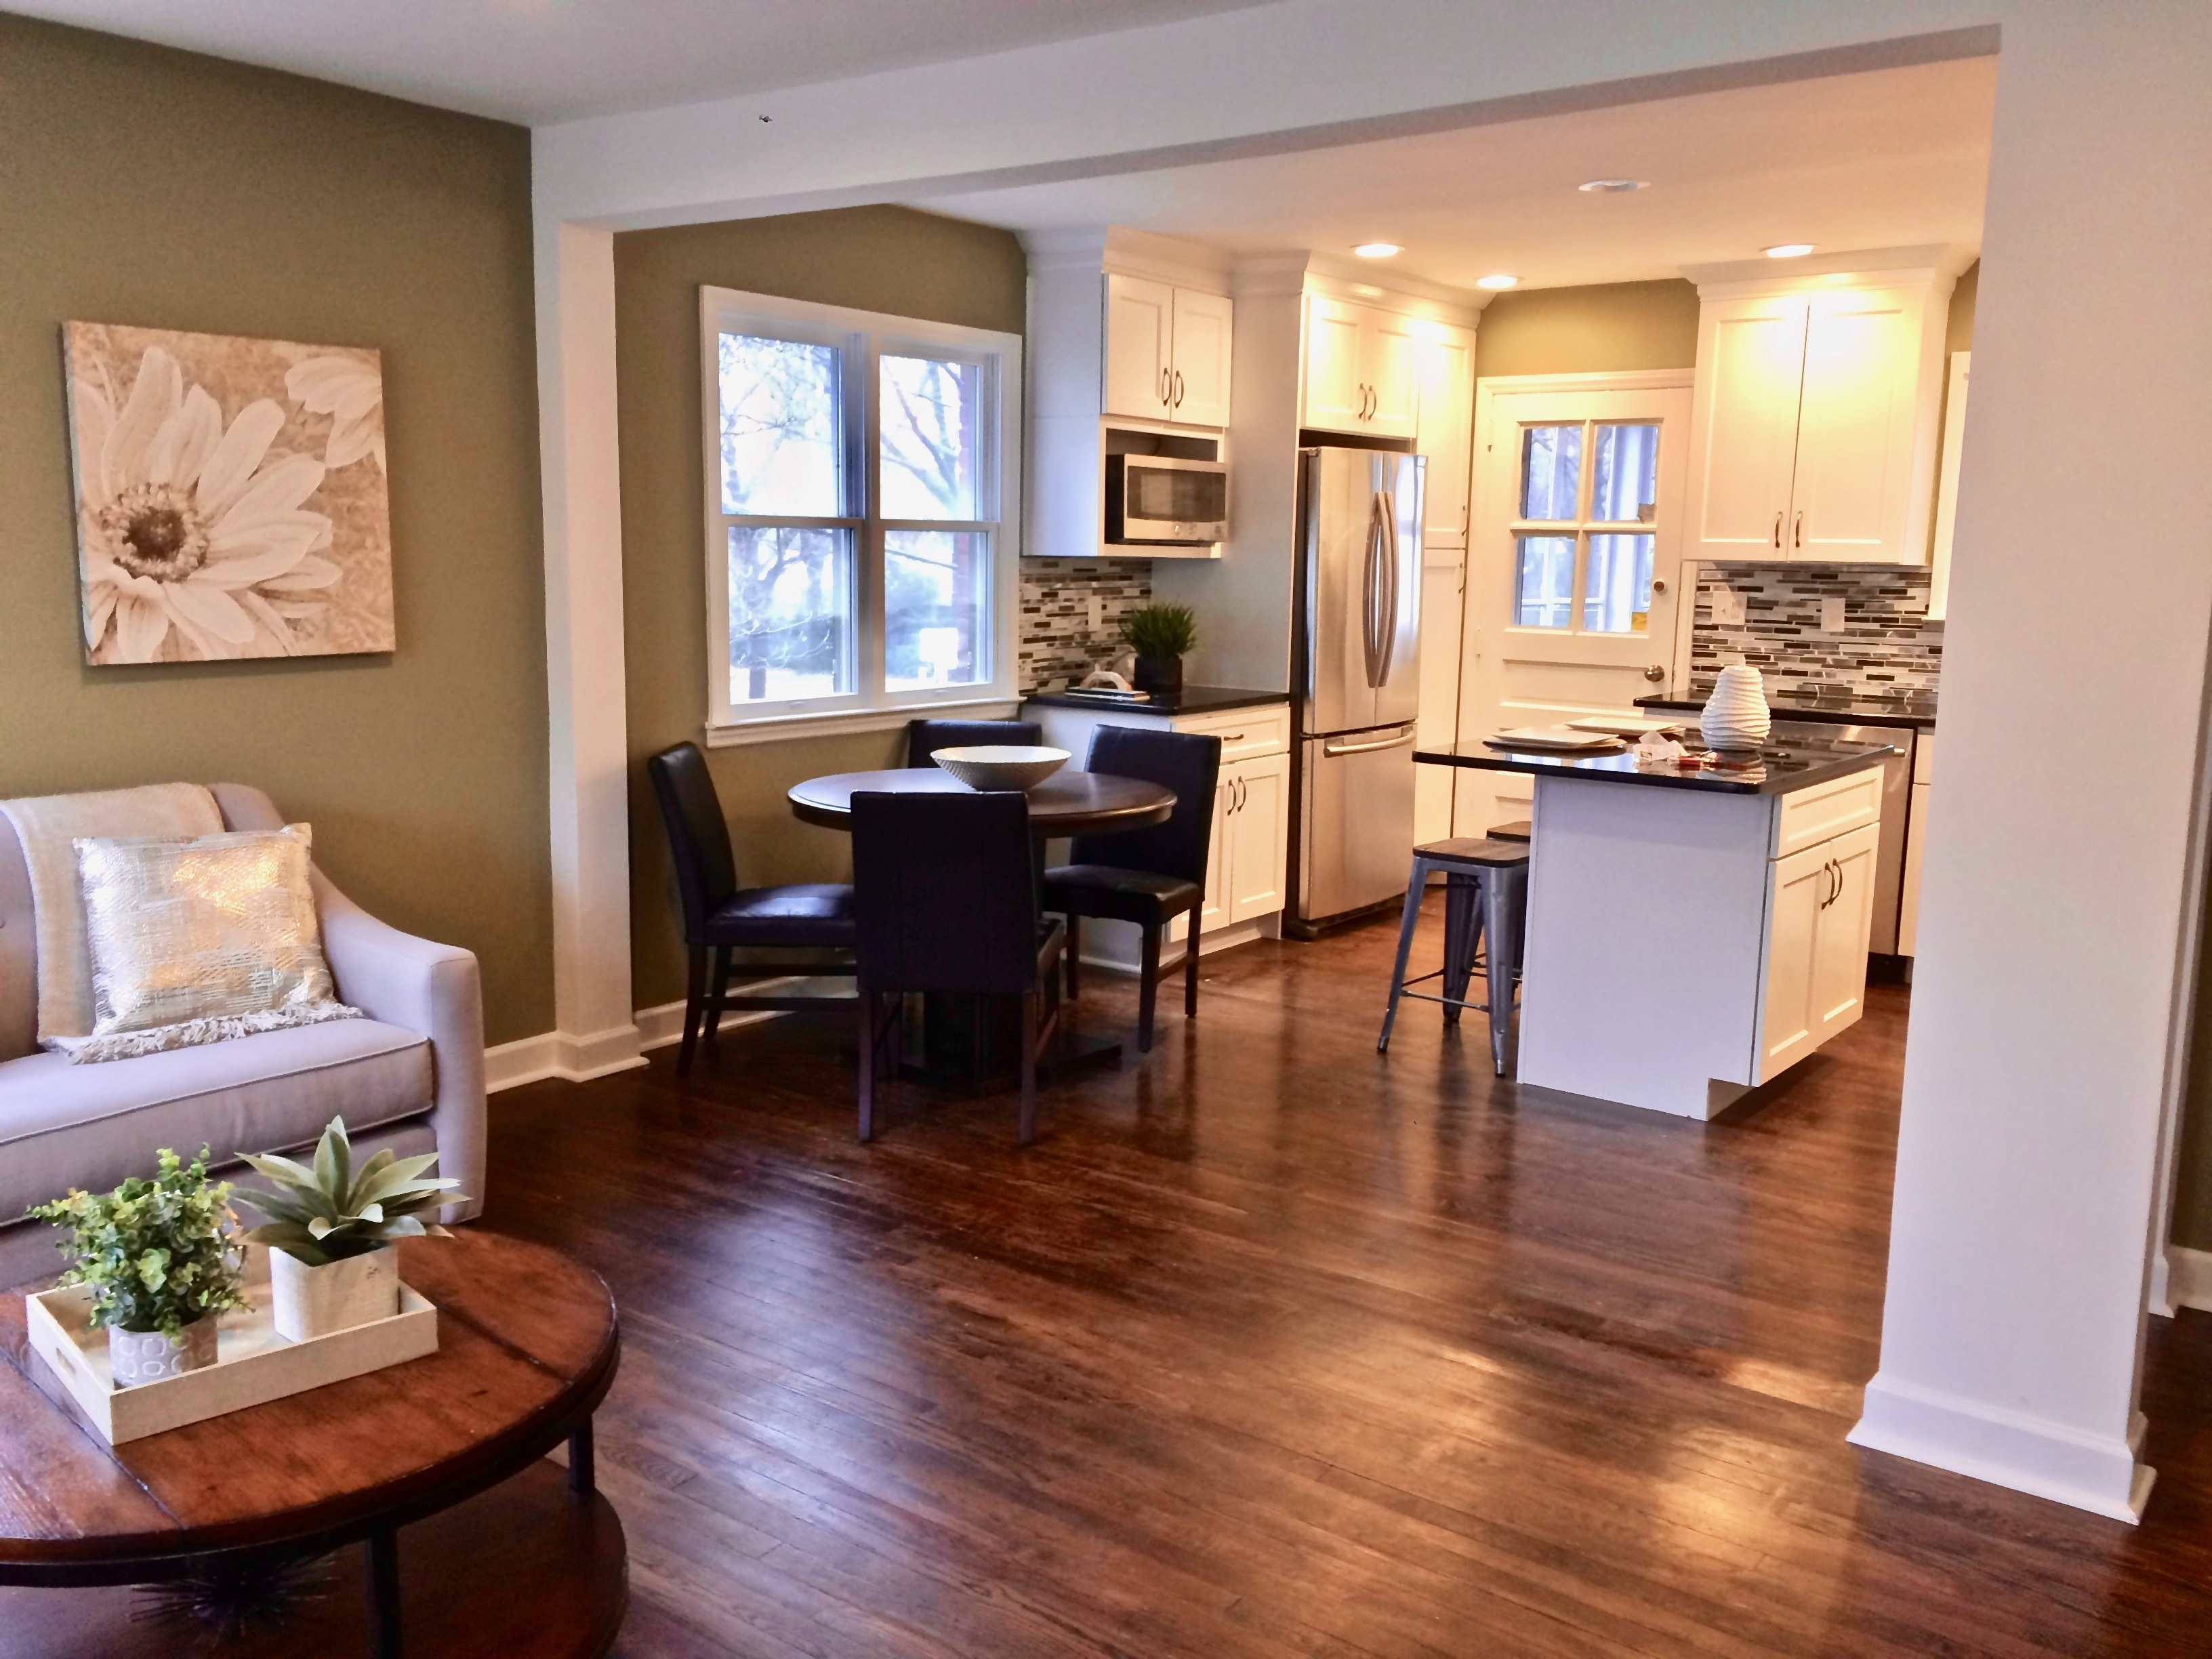 kitchen/dining area of small investor flip